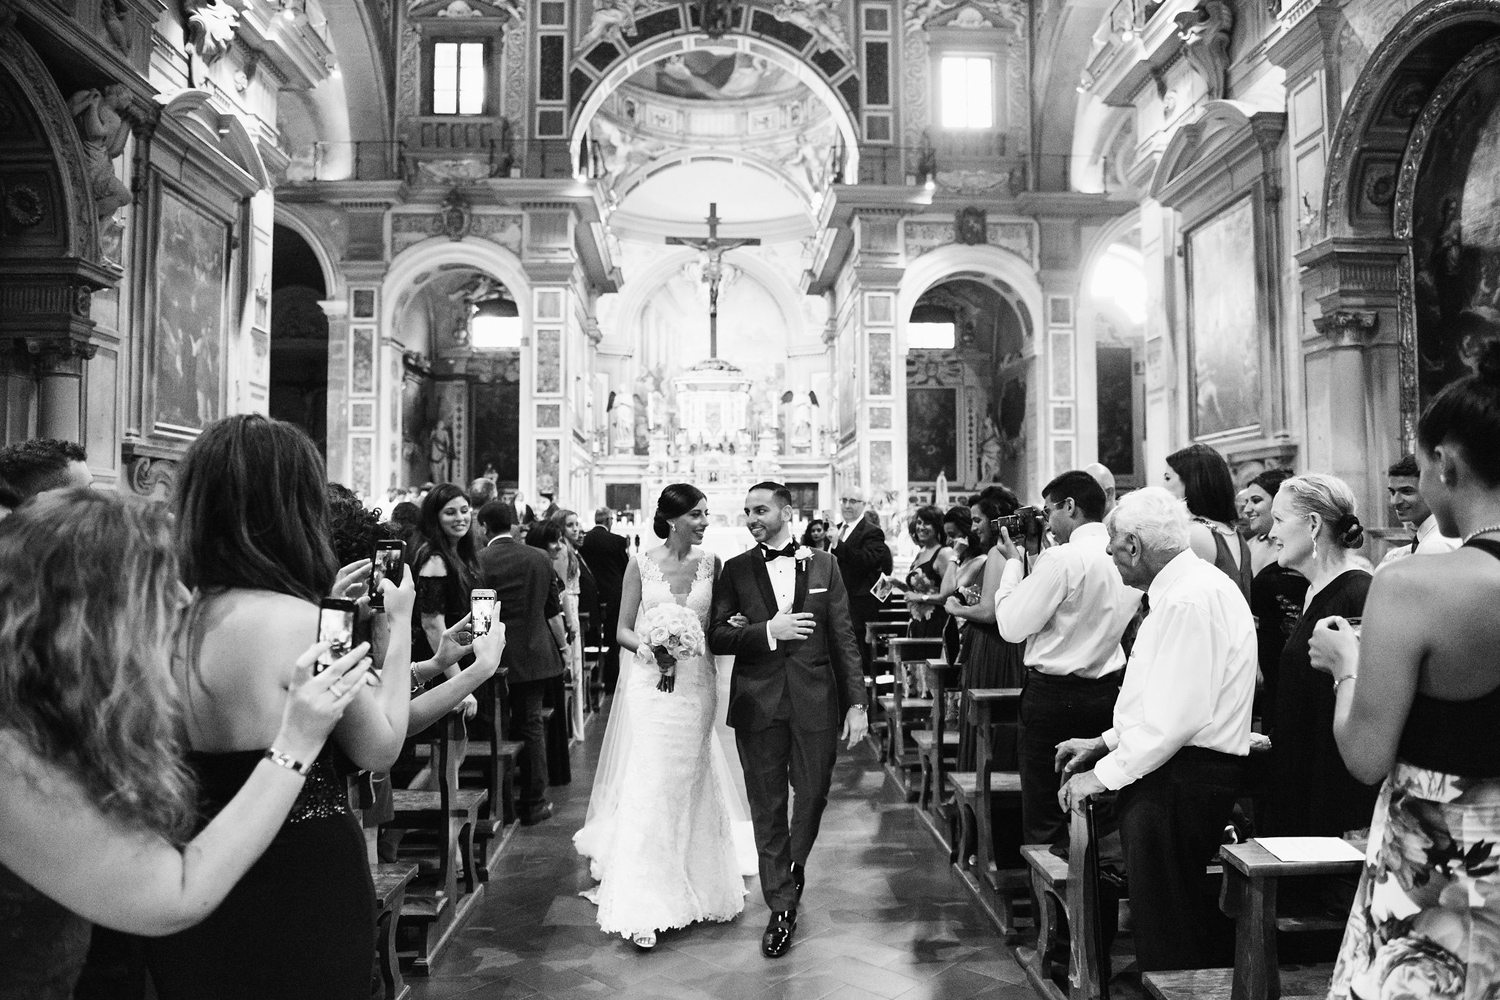 katie_mitchell_wedding_florence_tuscany_villa_di_miano_wedding_photography_28.jpg